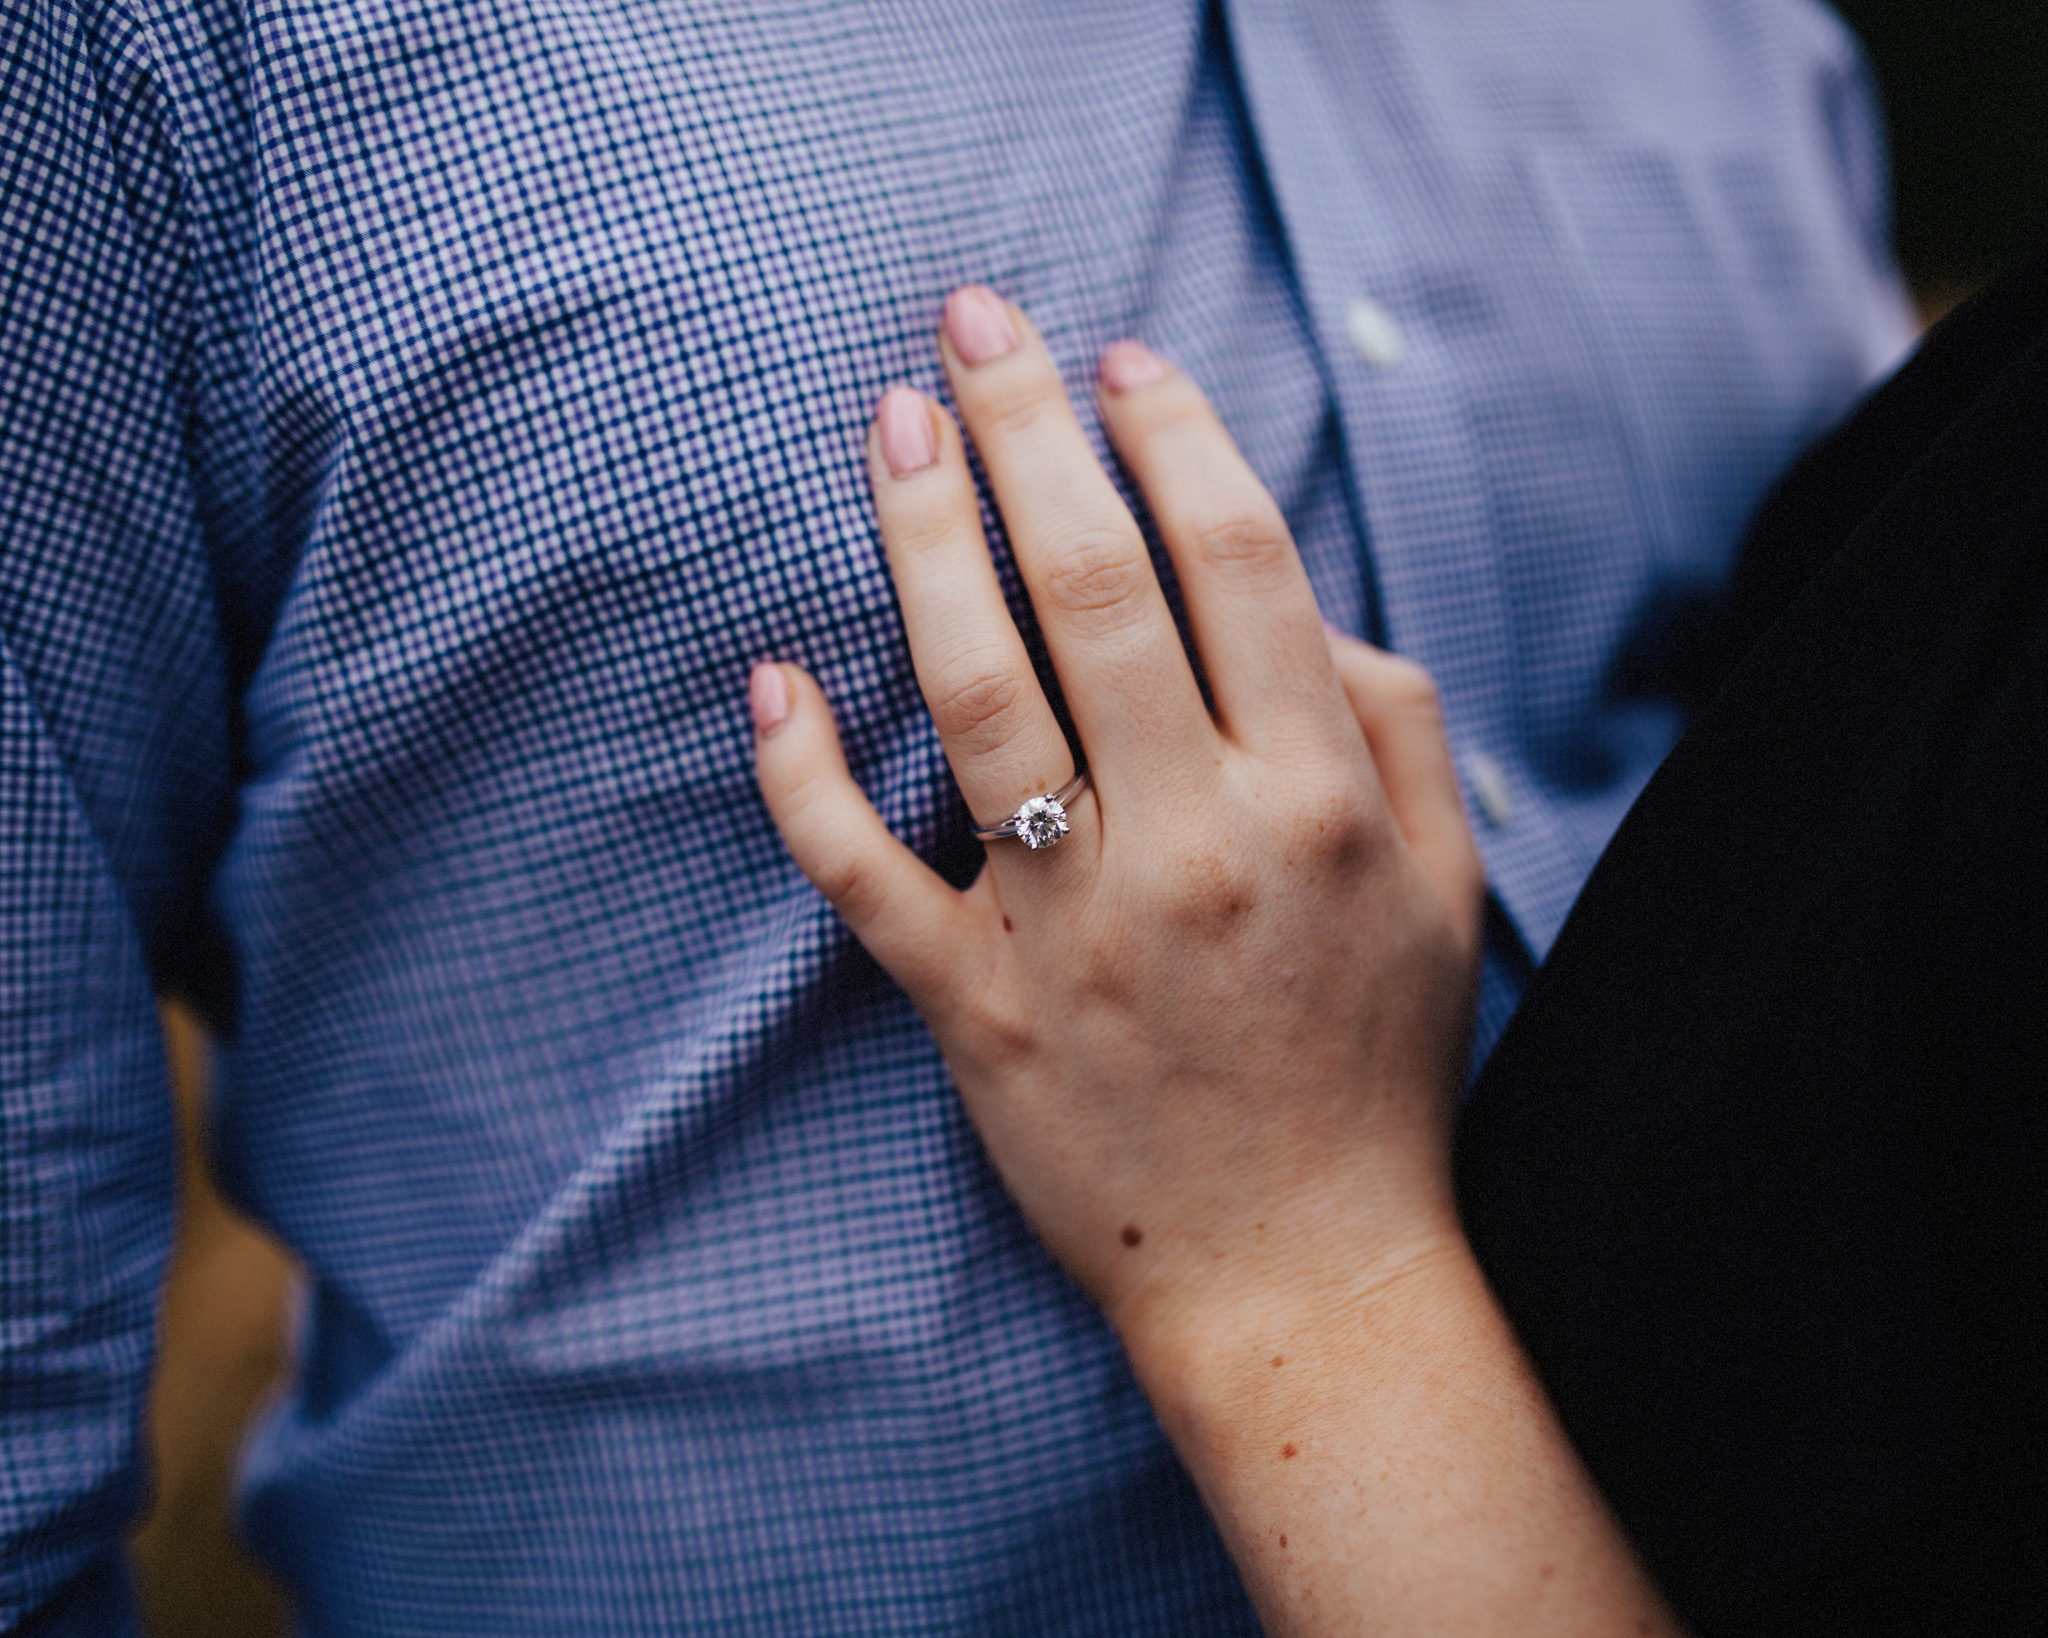 Discovery Park Engagement | Diamond Engagement Ring